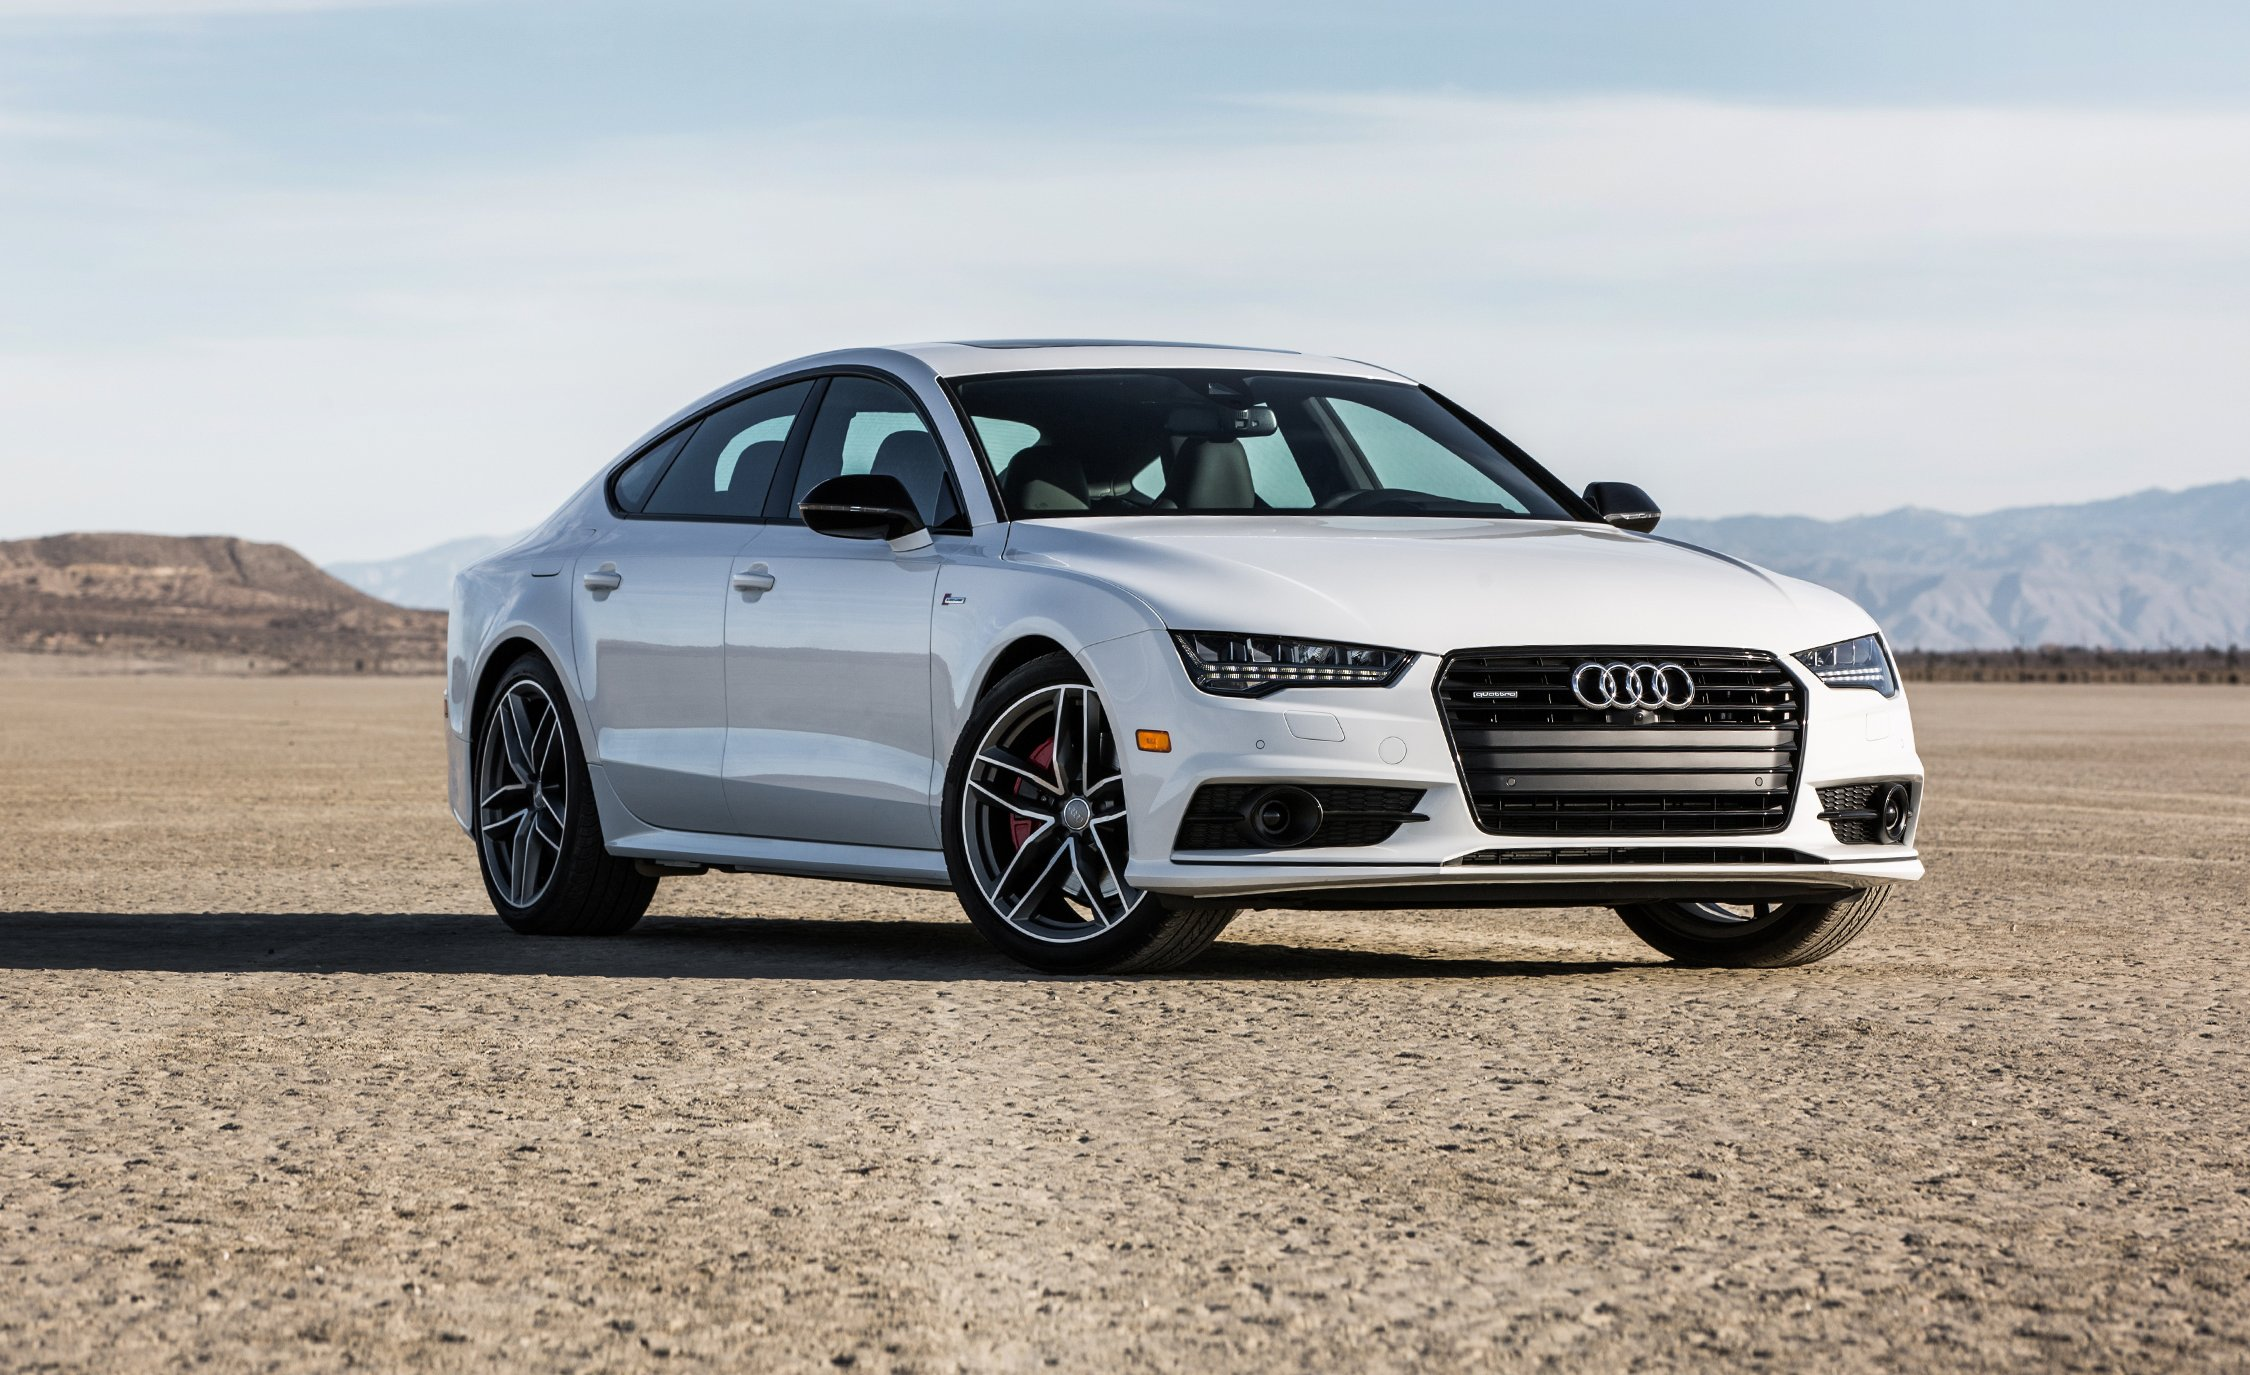 Audi A Price Lease Long Beach CA - How much does an audi a7 cost